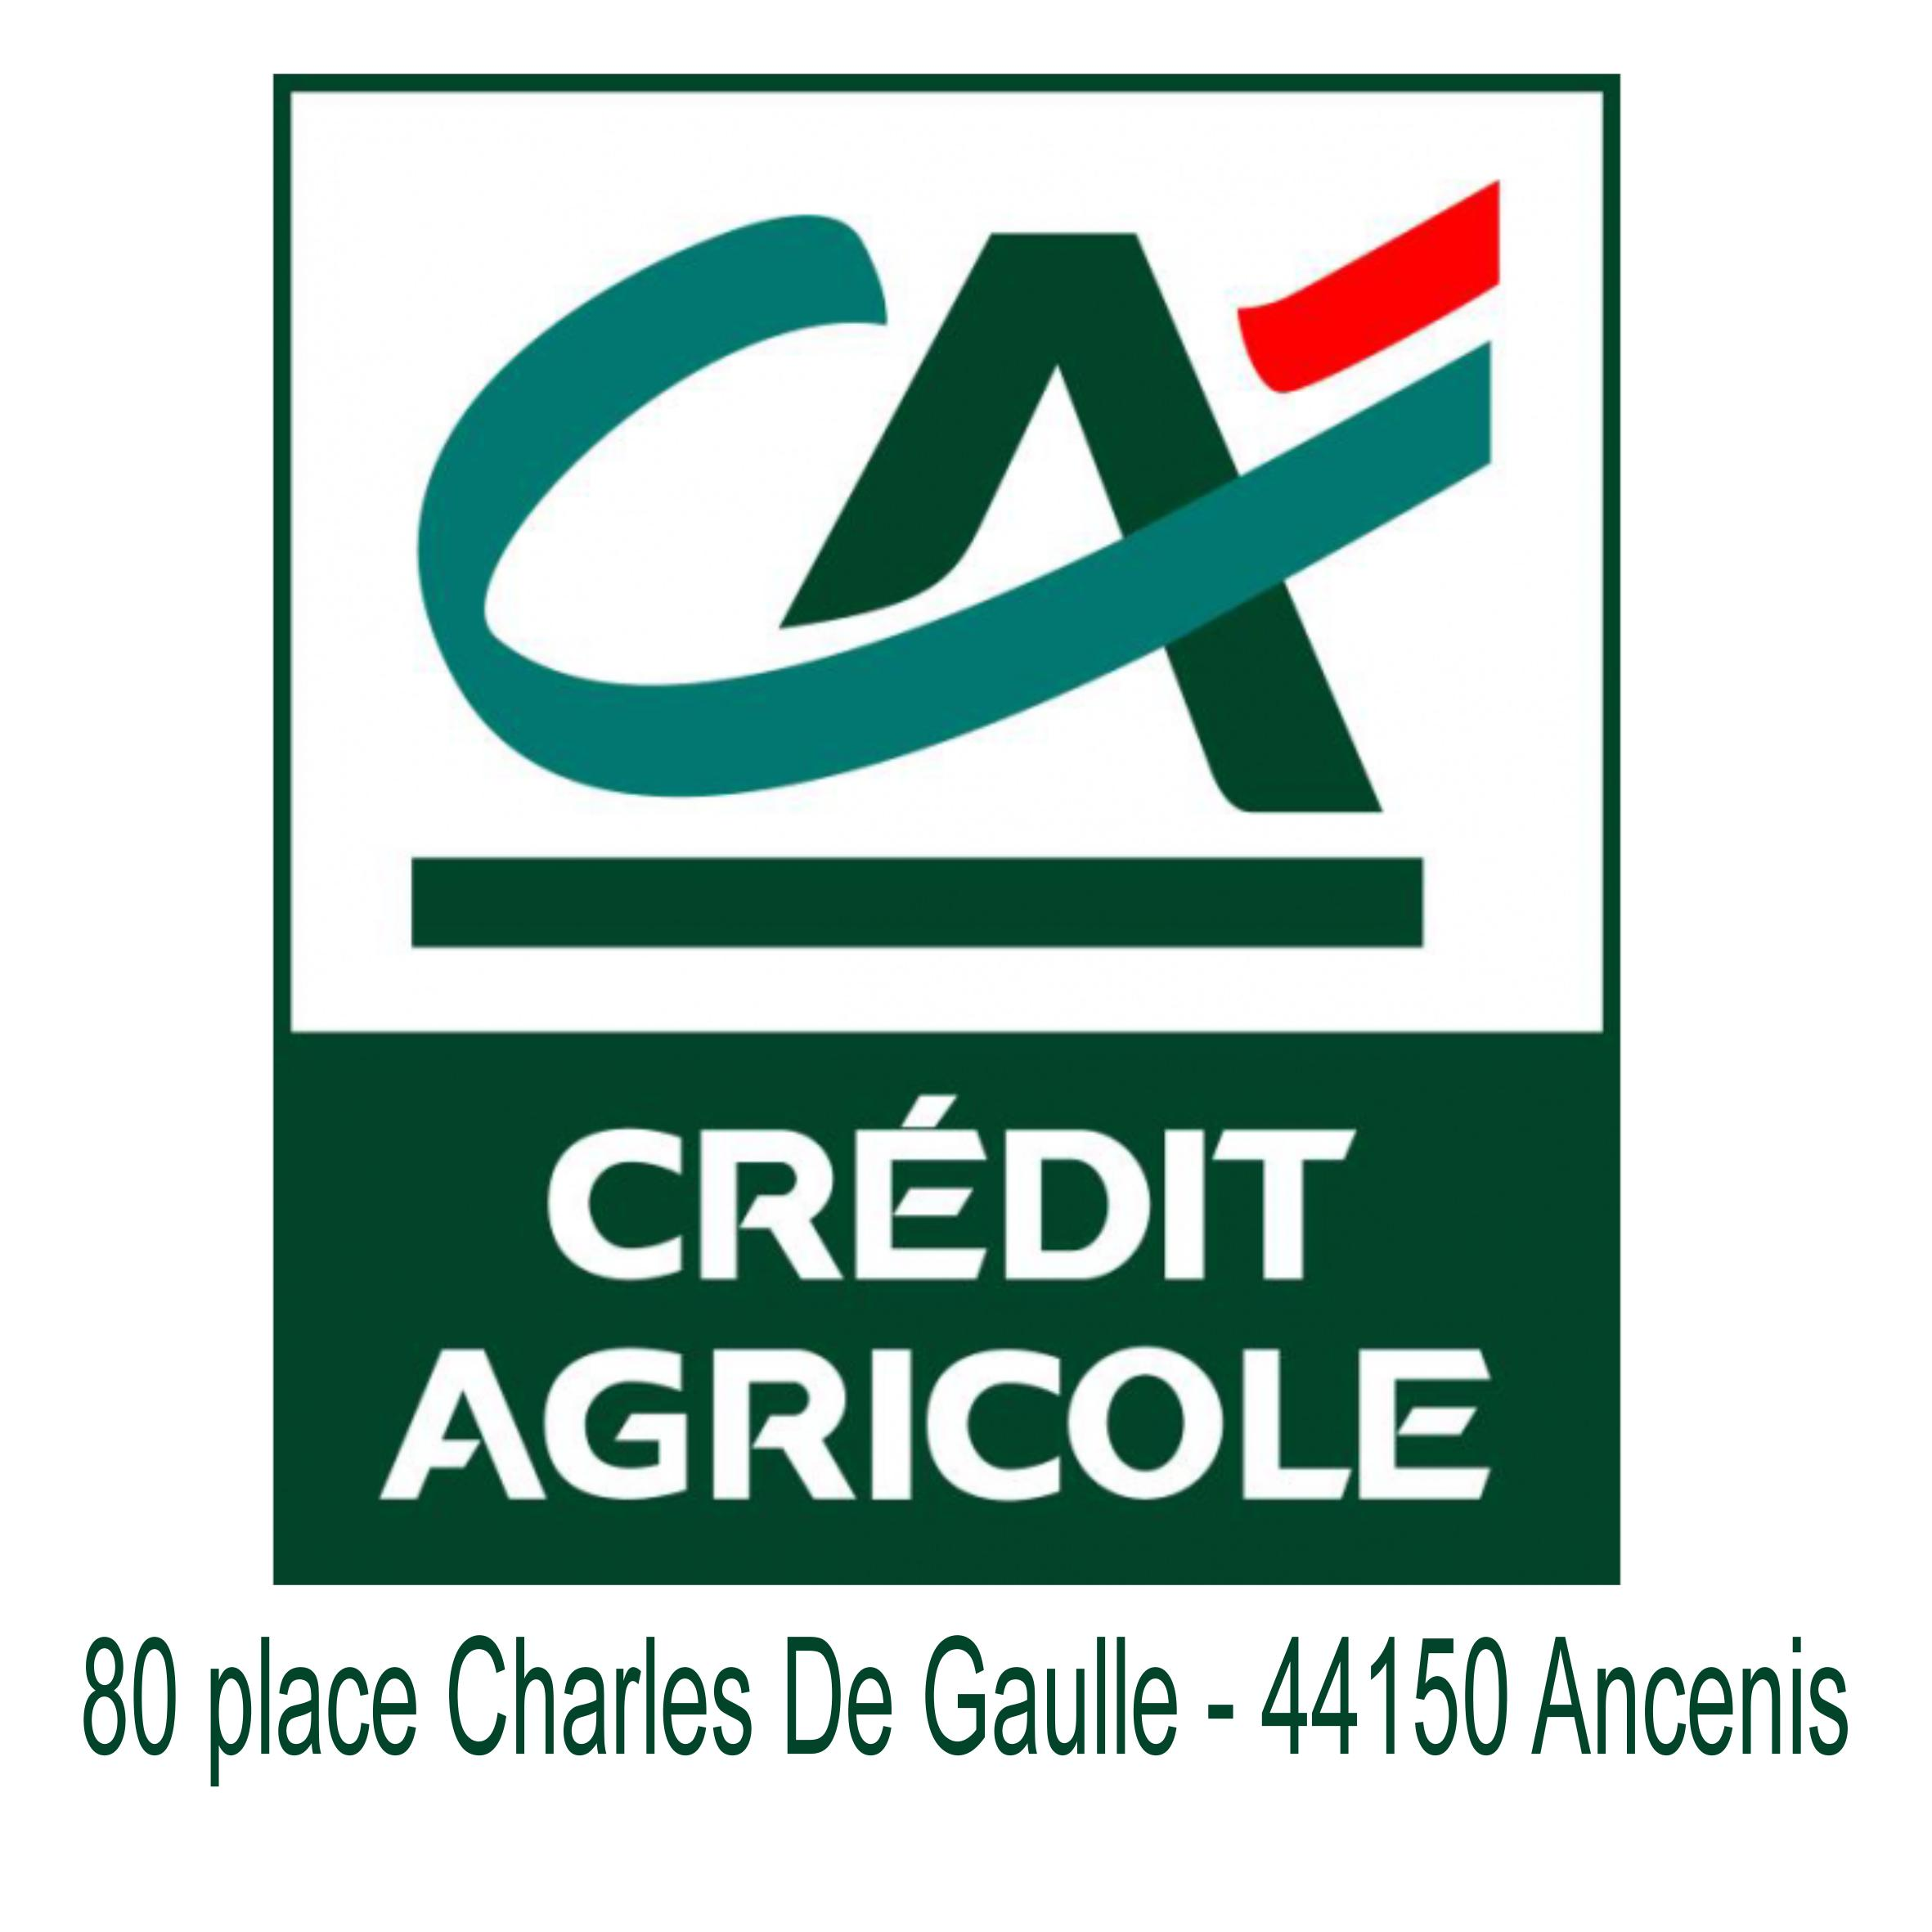 CREDIT AGRICOLE Ancenis